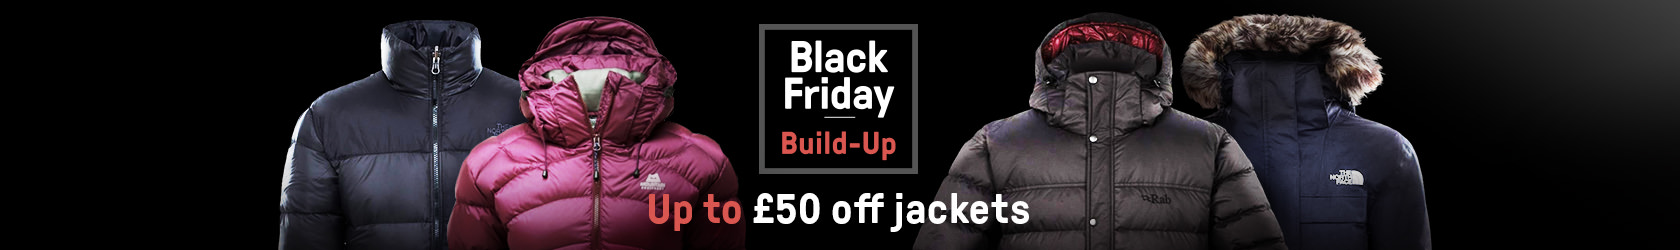 4 up to £50 off jackets